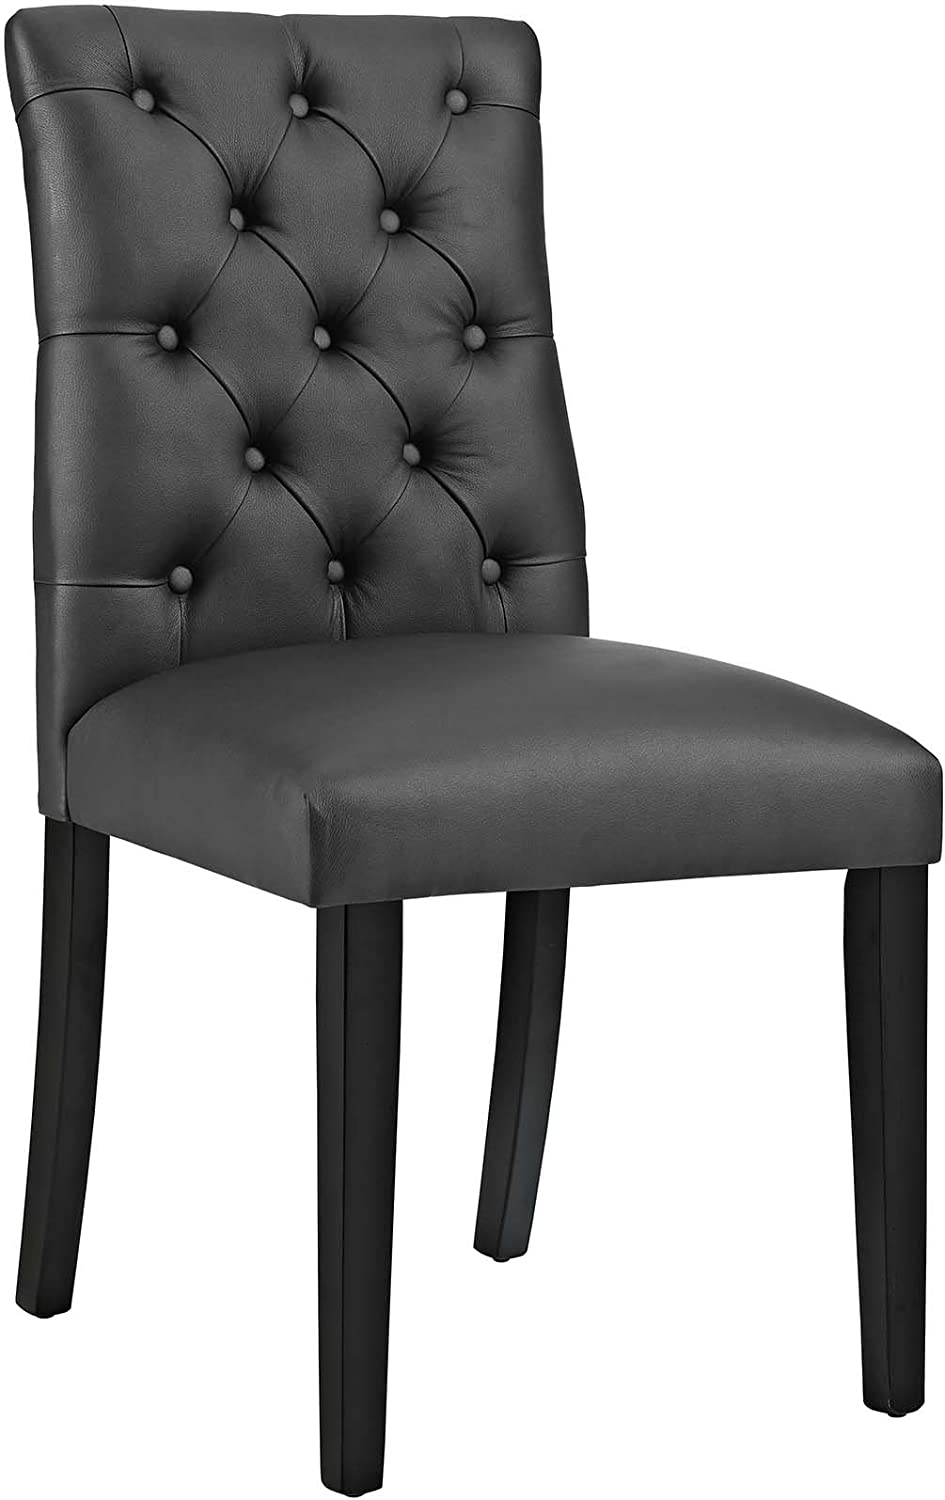 Modway MO- Duchess Modern Tufted Button Faux Leather Upholstered Parsons, Dining Chair, Black